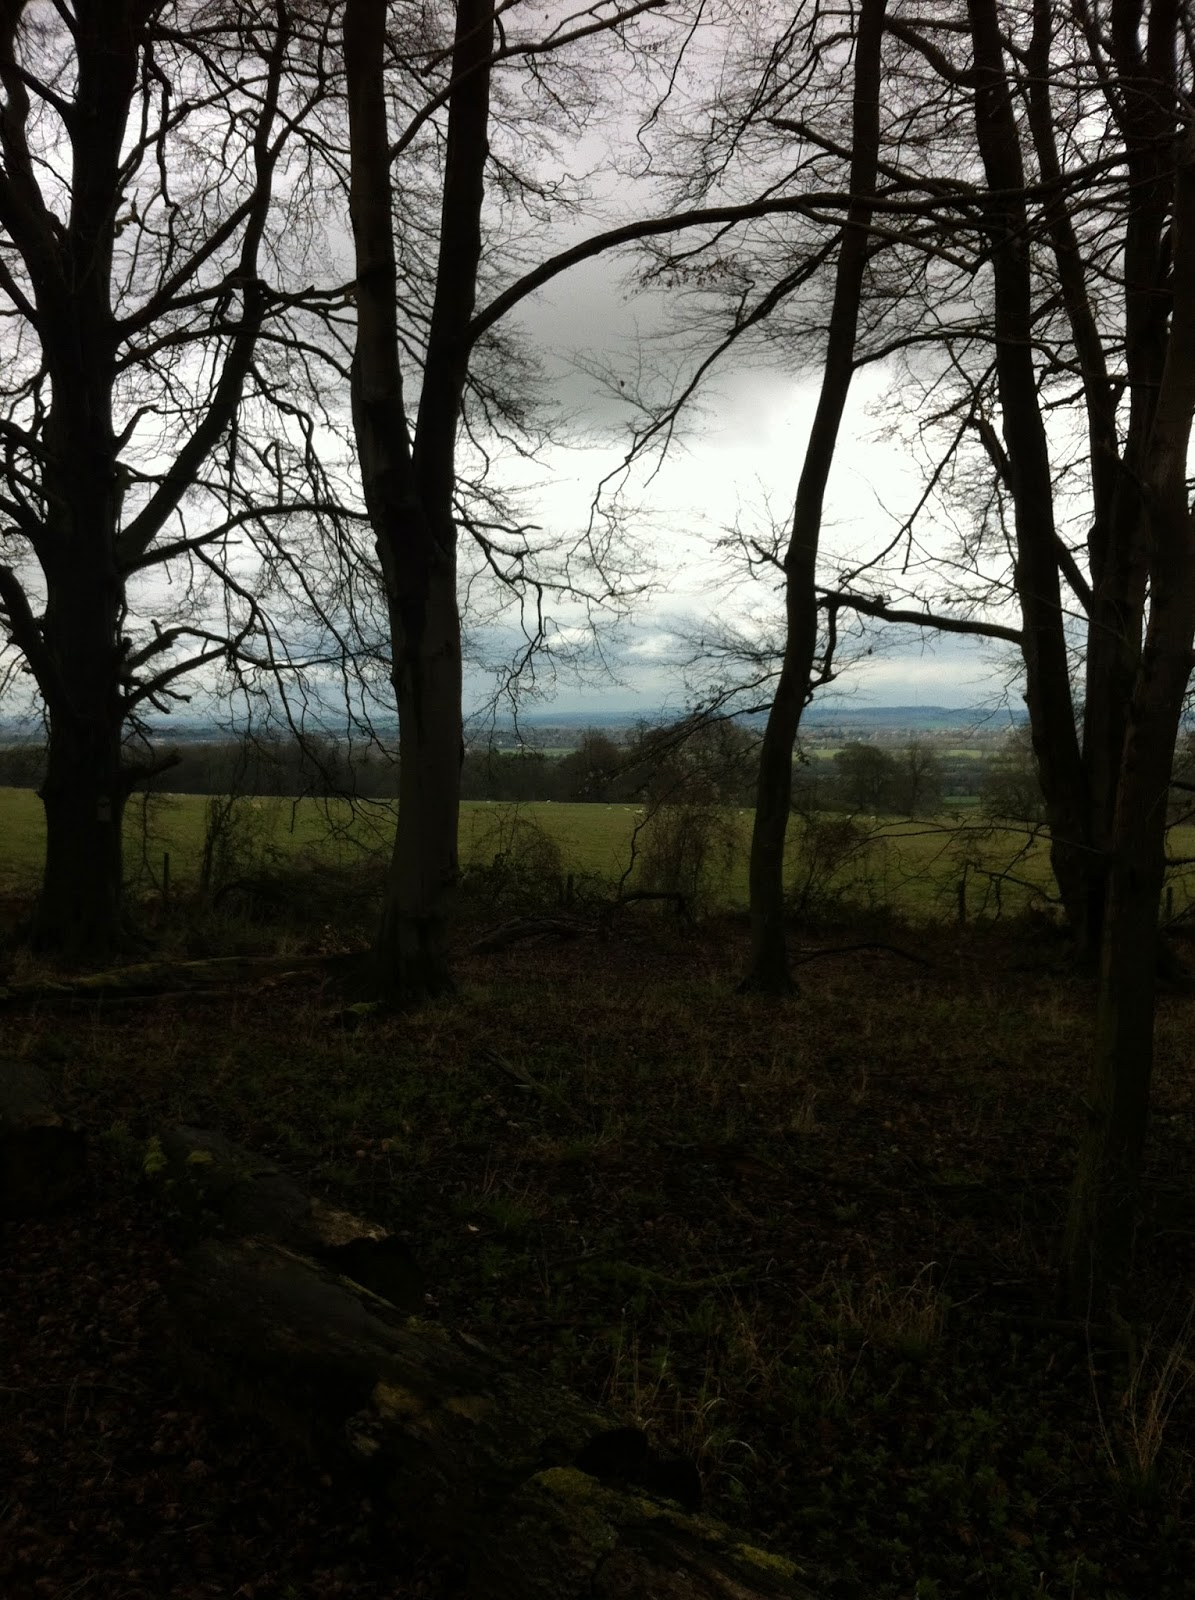 View from Wytham Woods on rainy day April 3rd 2015